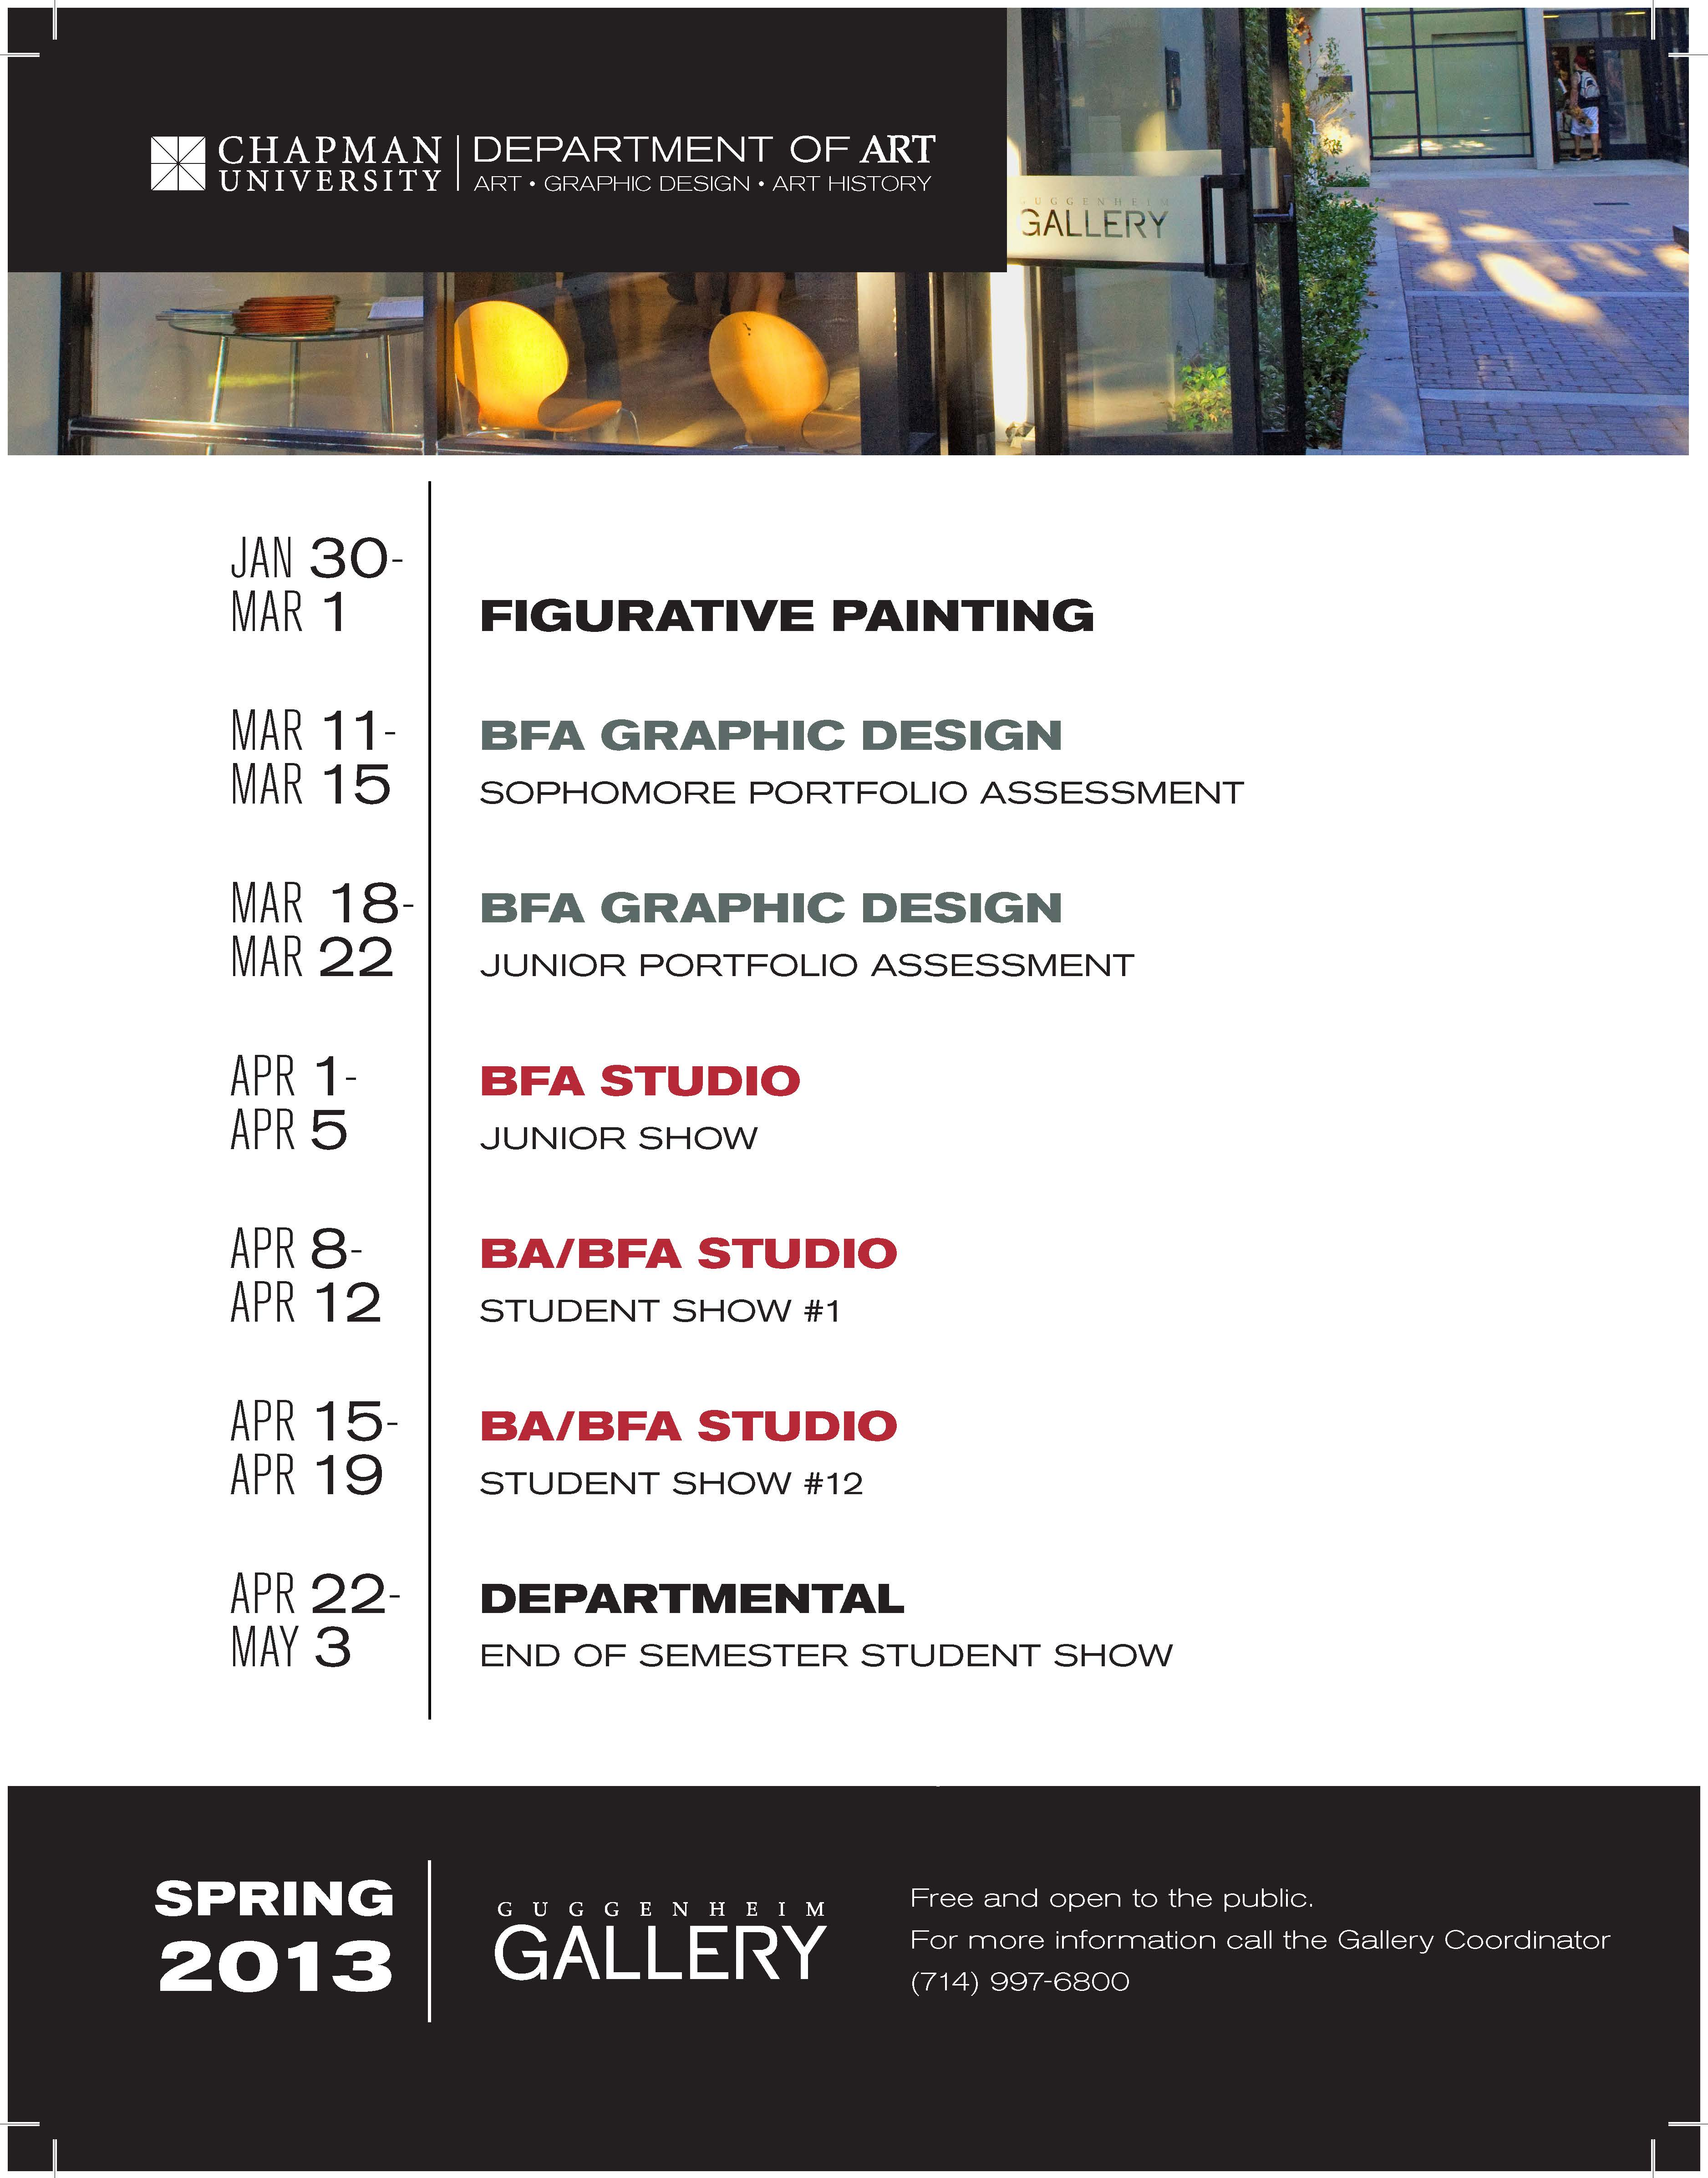 Poster of Spring 2013 Gallery Schedule